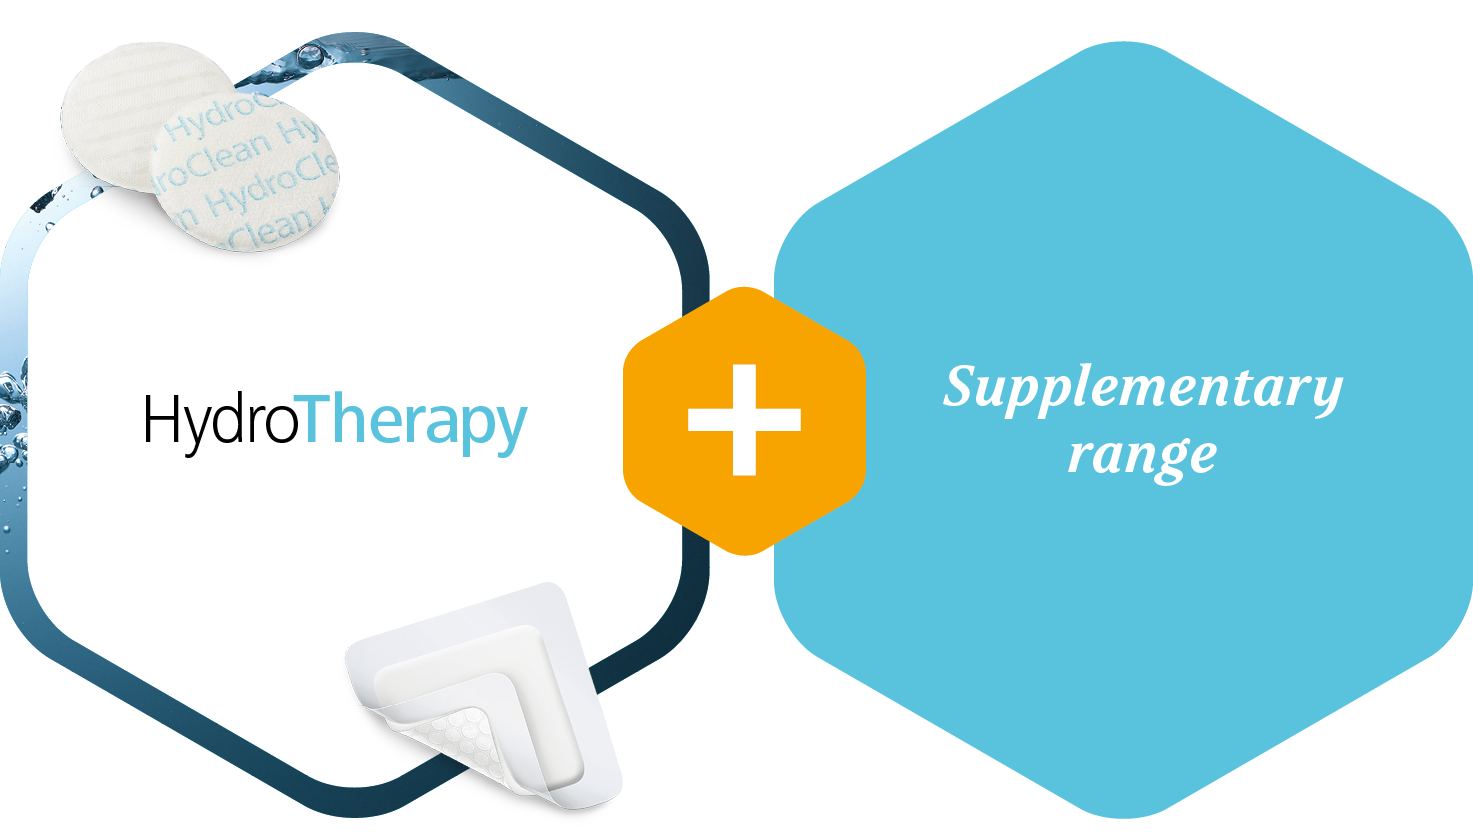 Introducing the combination of HydroTherapy and the supplementary range